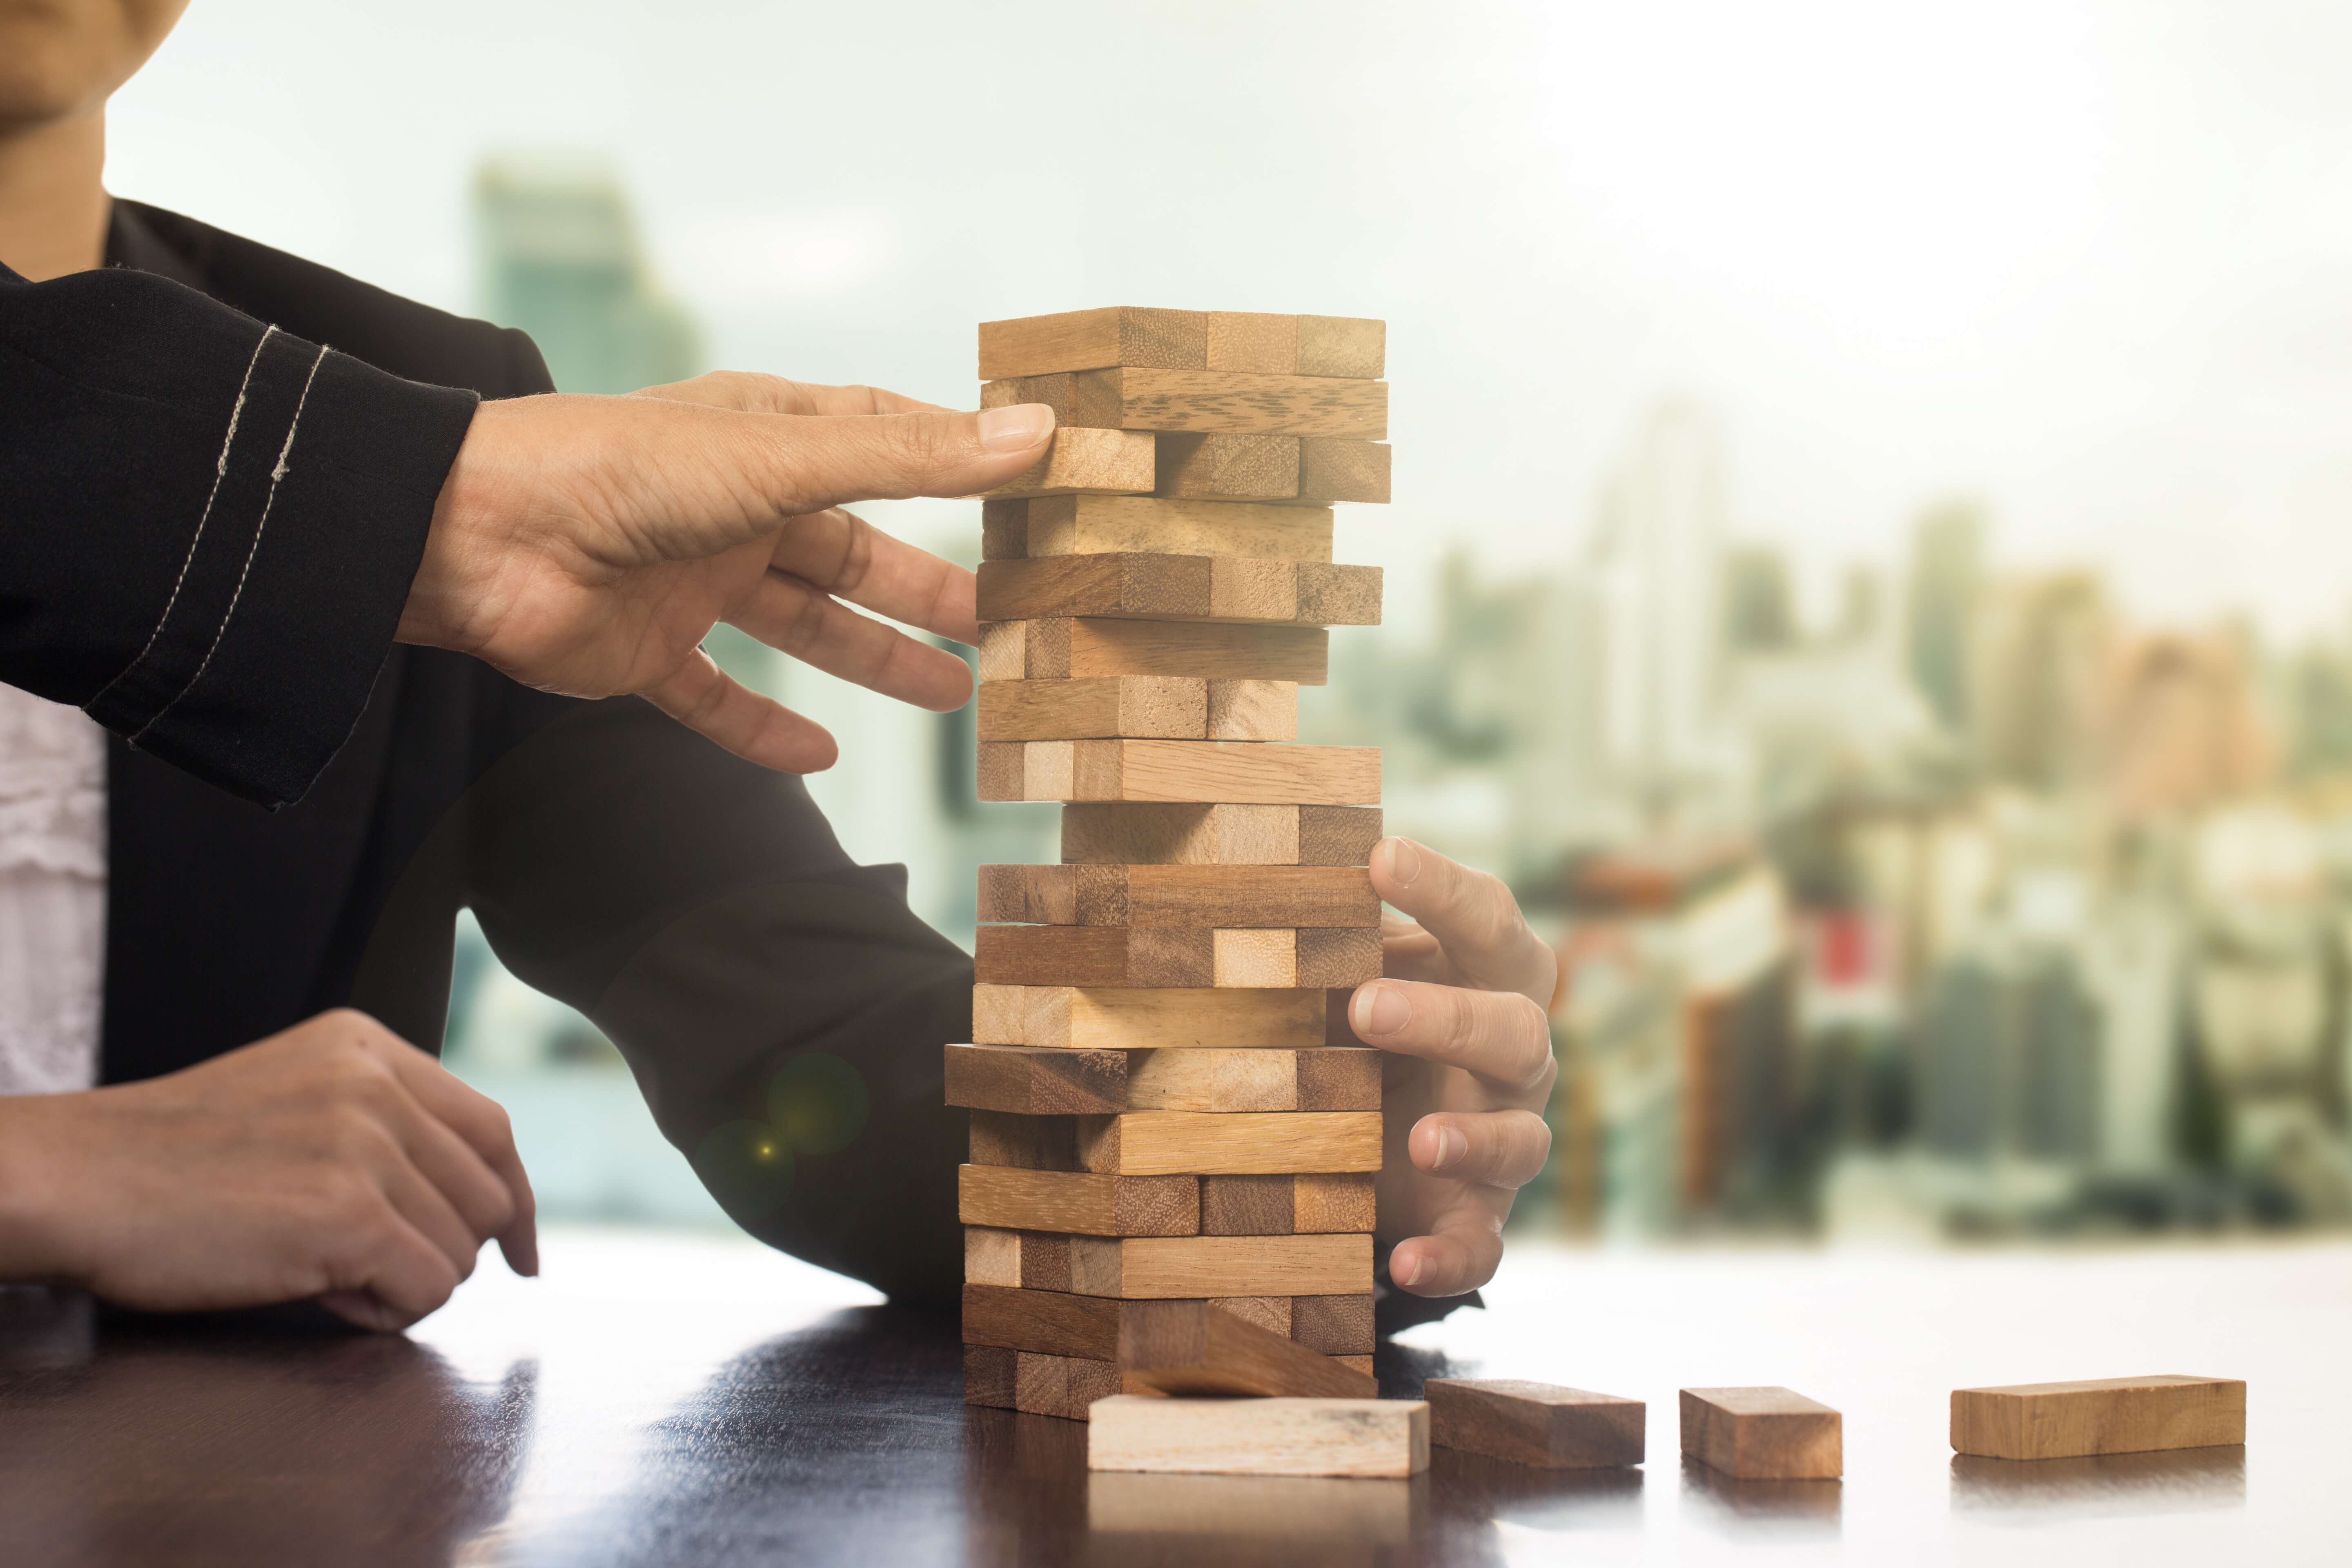 Competitive Intelligence Tools: Traditional Taxonomies vs. Natural Language Processing